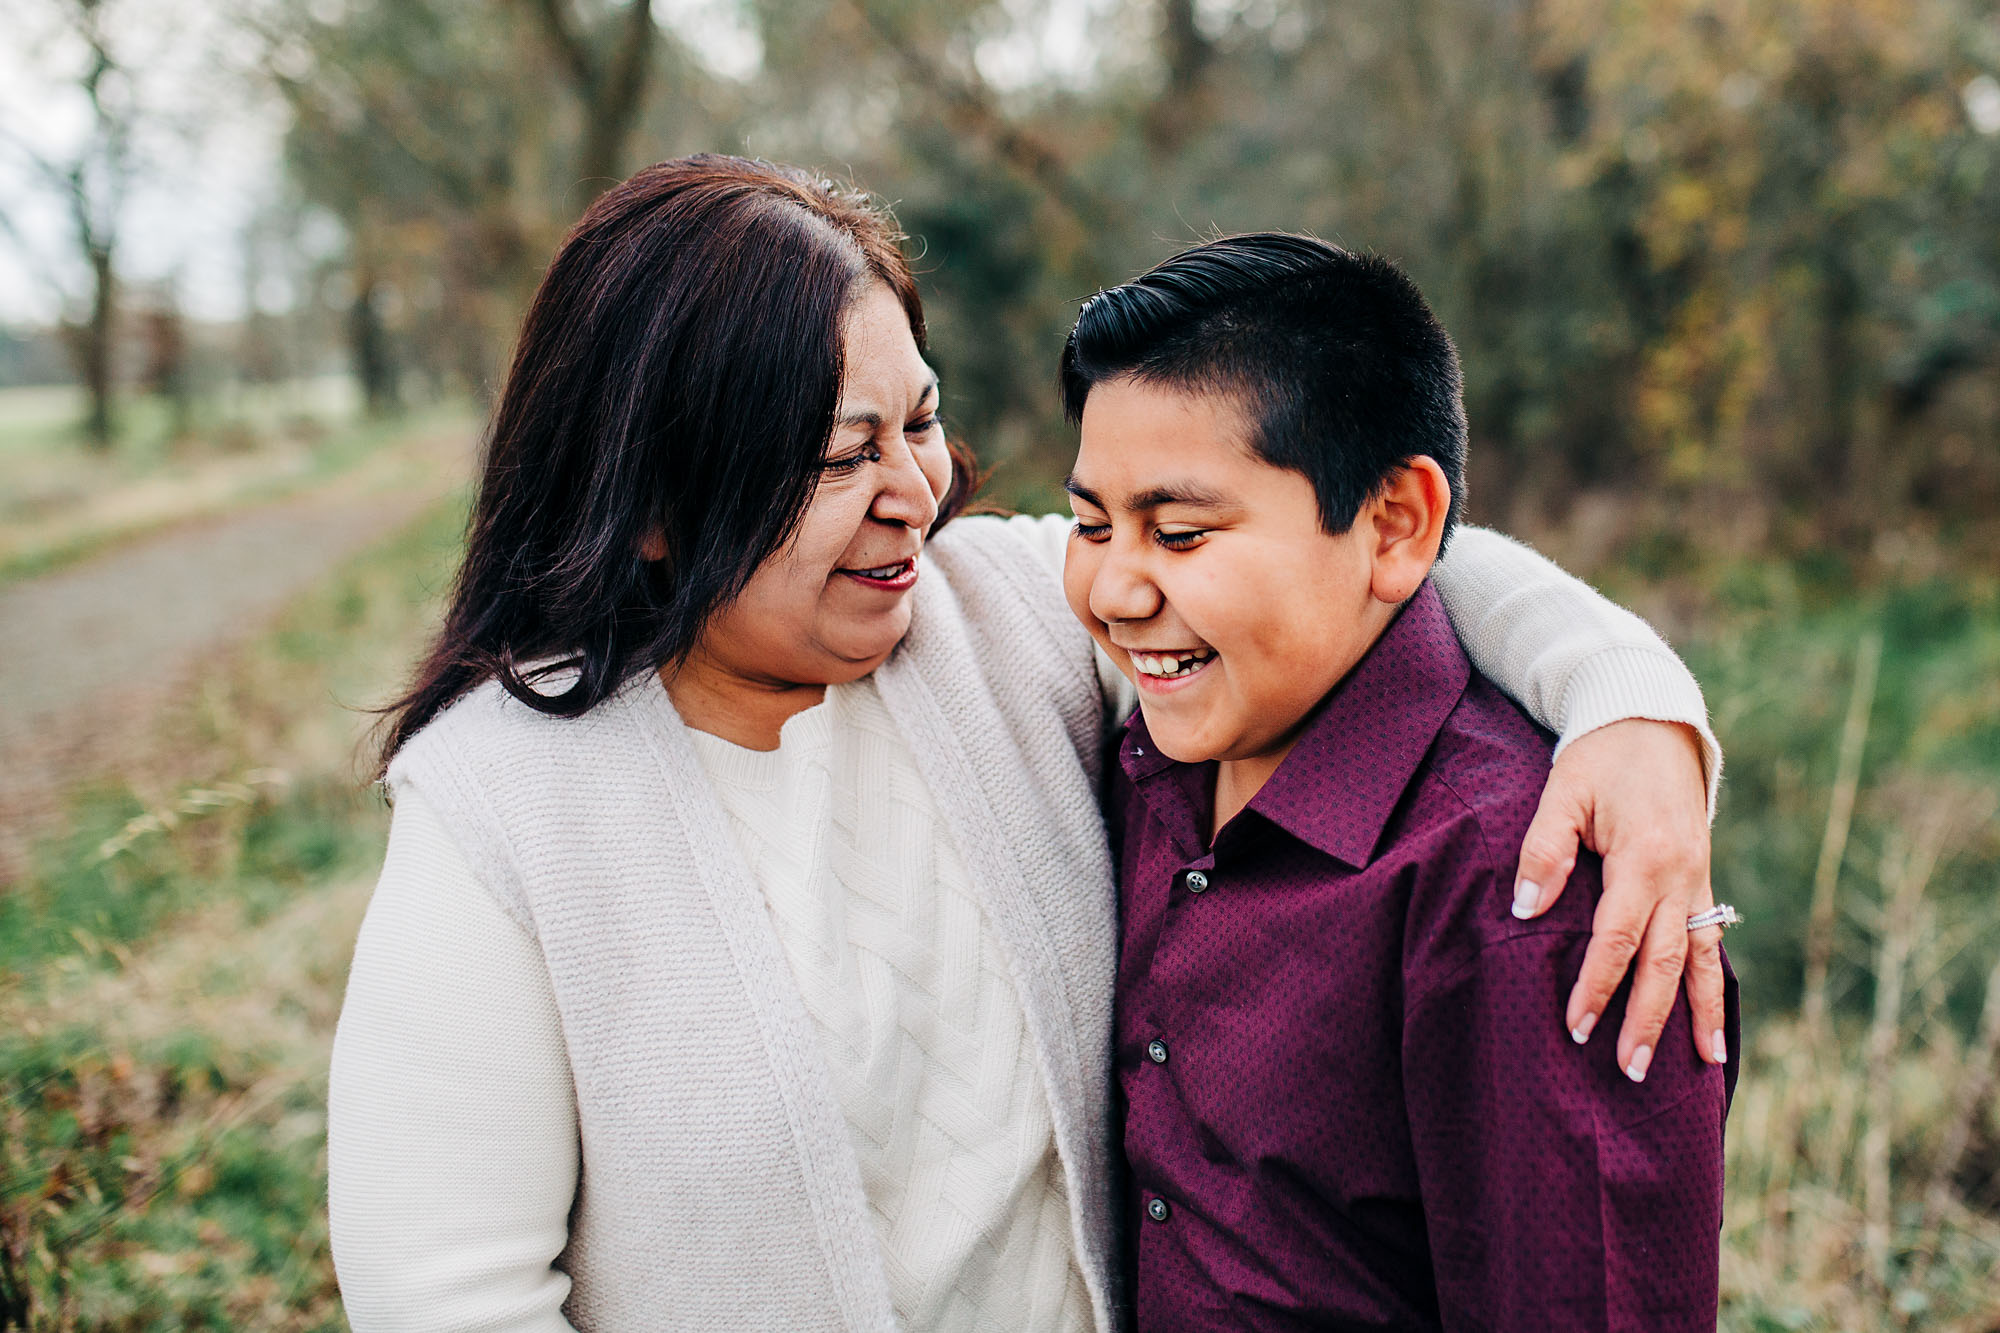 A grandmother and grandson laugh and put their arms around each other during an extended family photo session with Amy Wright Photo, based out of Roseville, California.